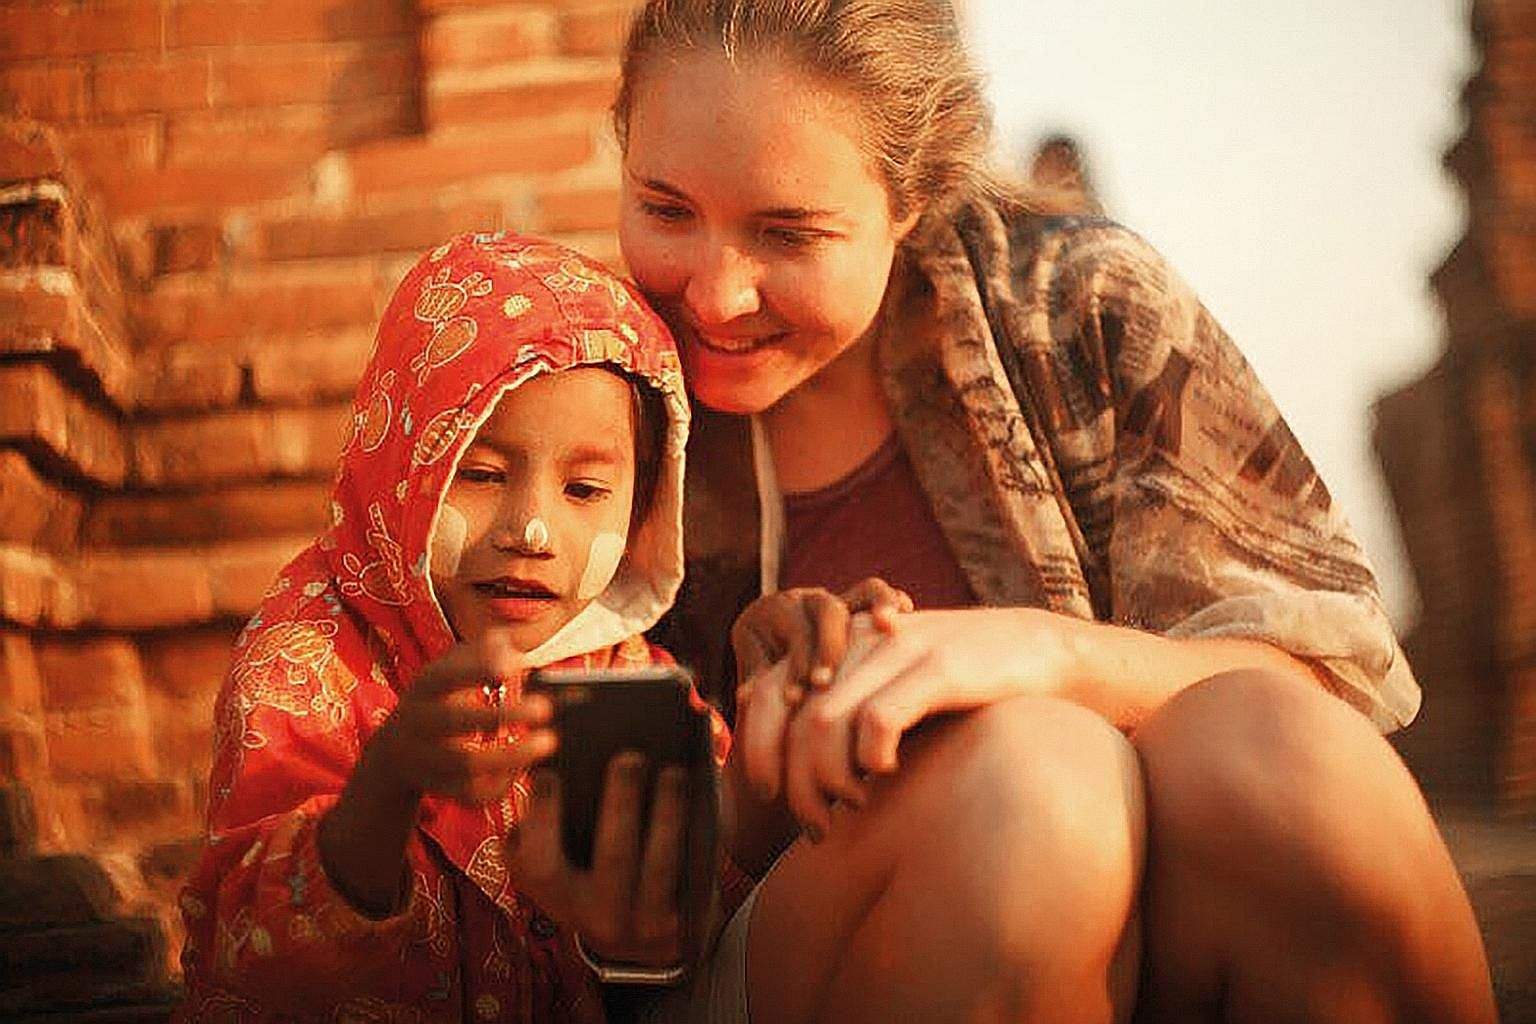 Ms Katrin Nagel (above, with a child in Myanmar) on her experience with meeting fellow solo women travellers on her trips